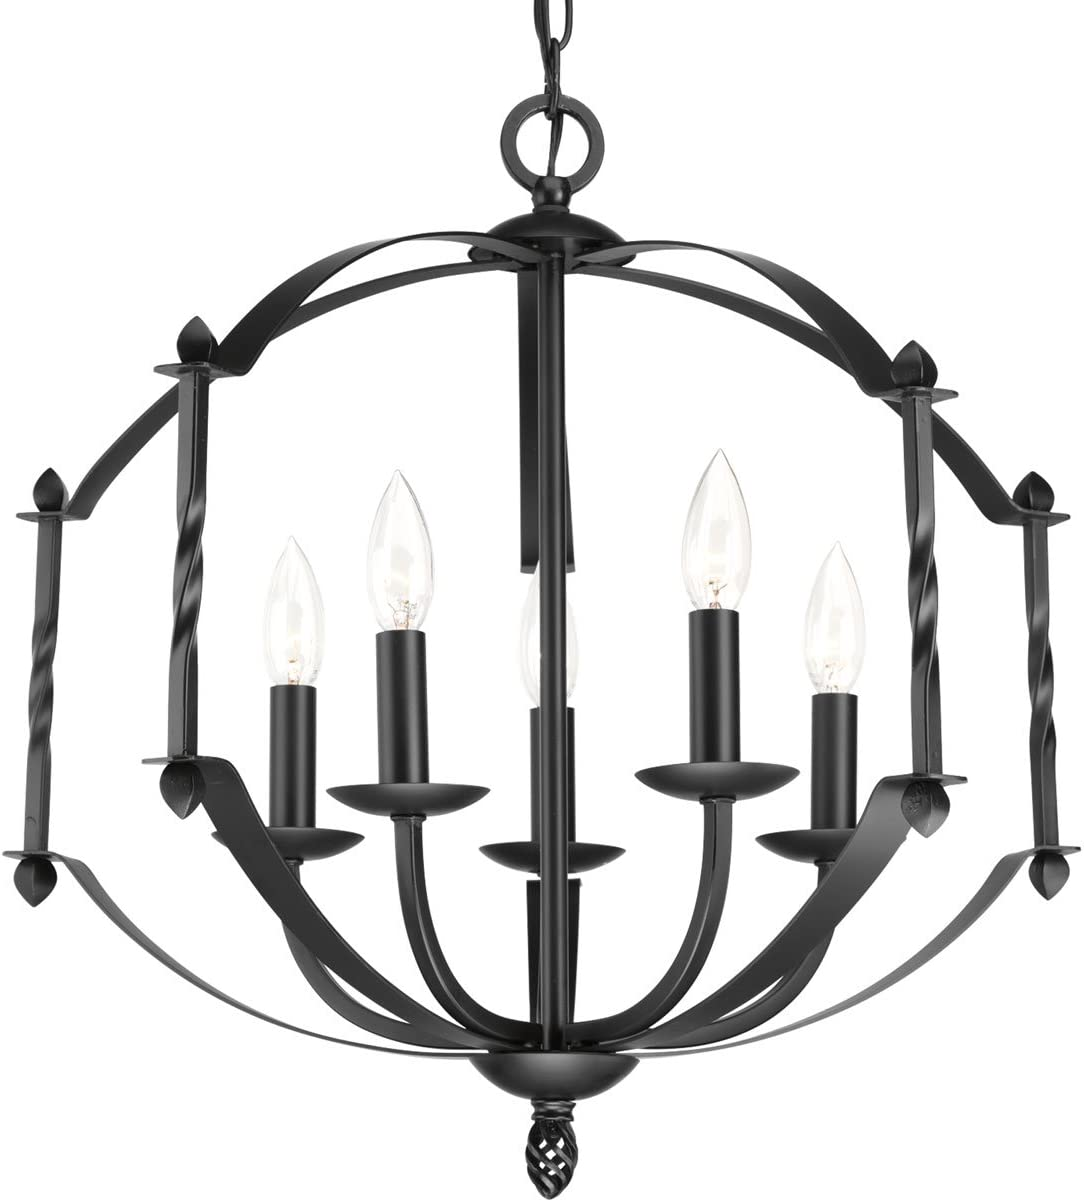 Progress Lighting P4710-31 Traditional Five Light Chandelier from Greyson Collection in Black Finish